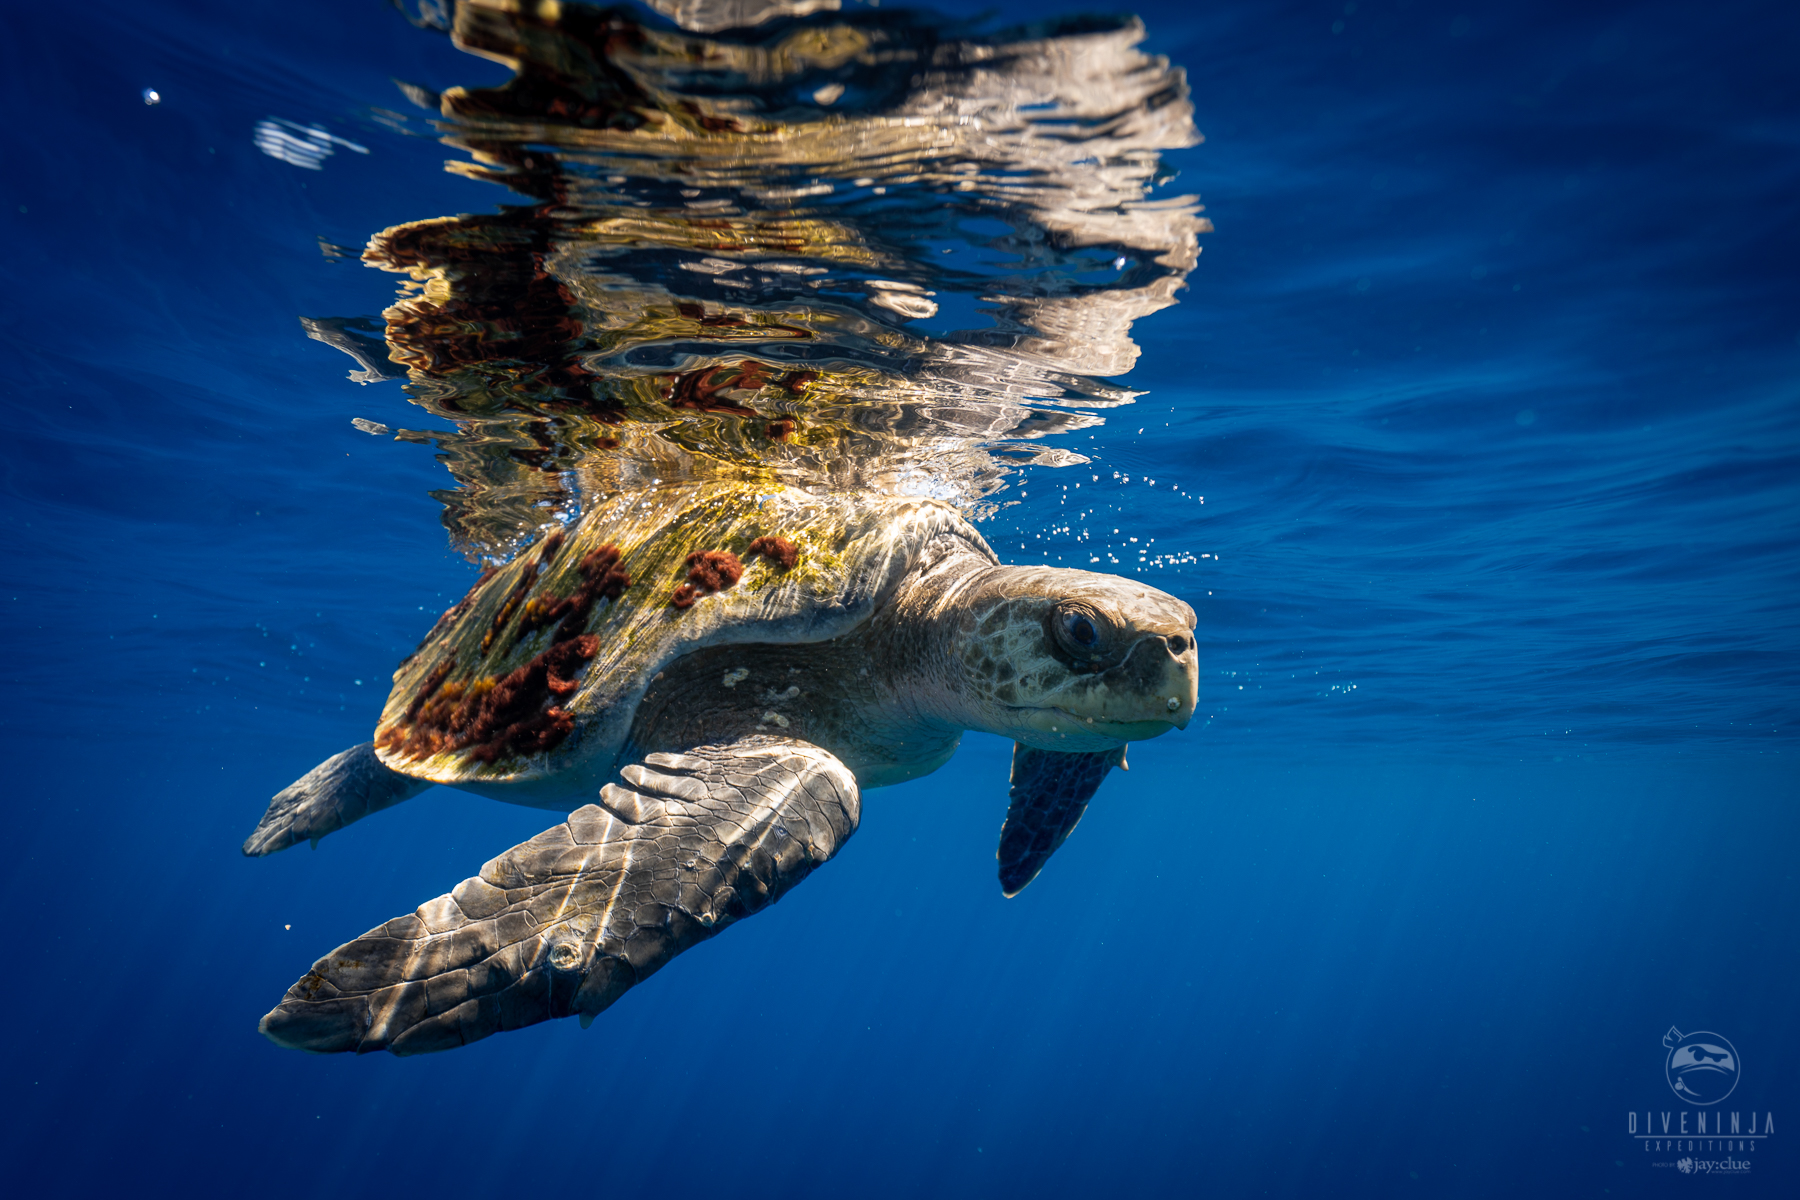 Freediving & scuba diving with sea turtles in Los Cabos